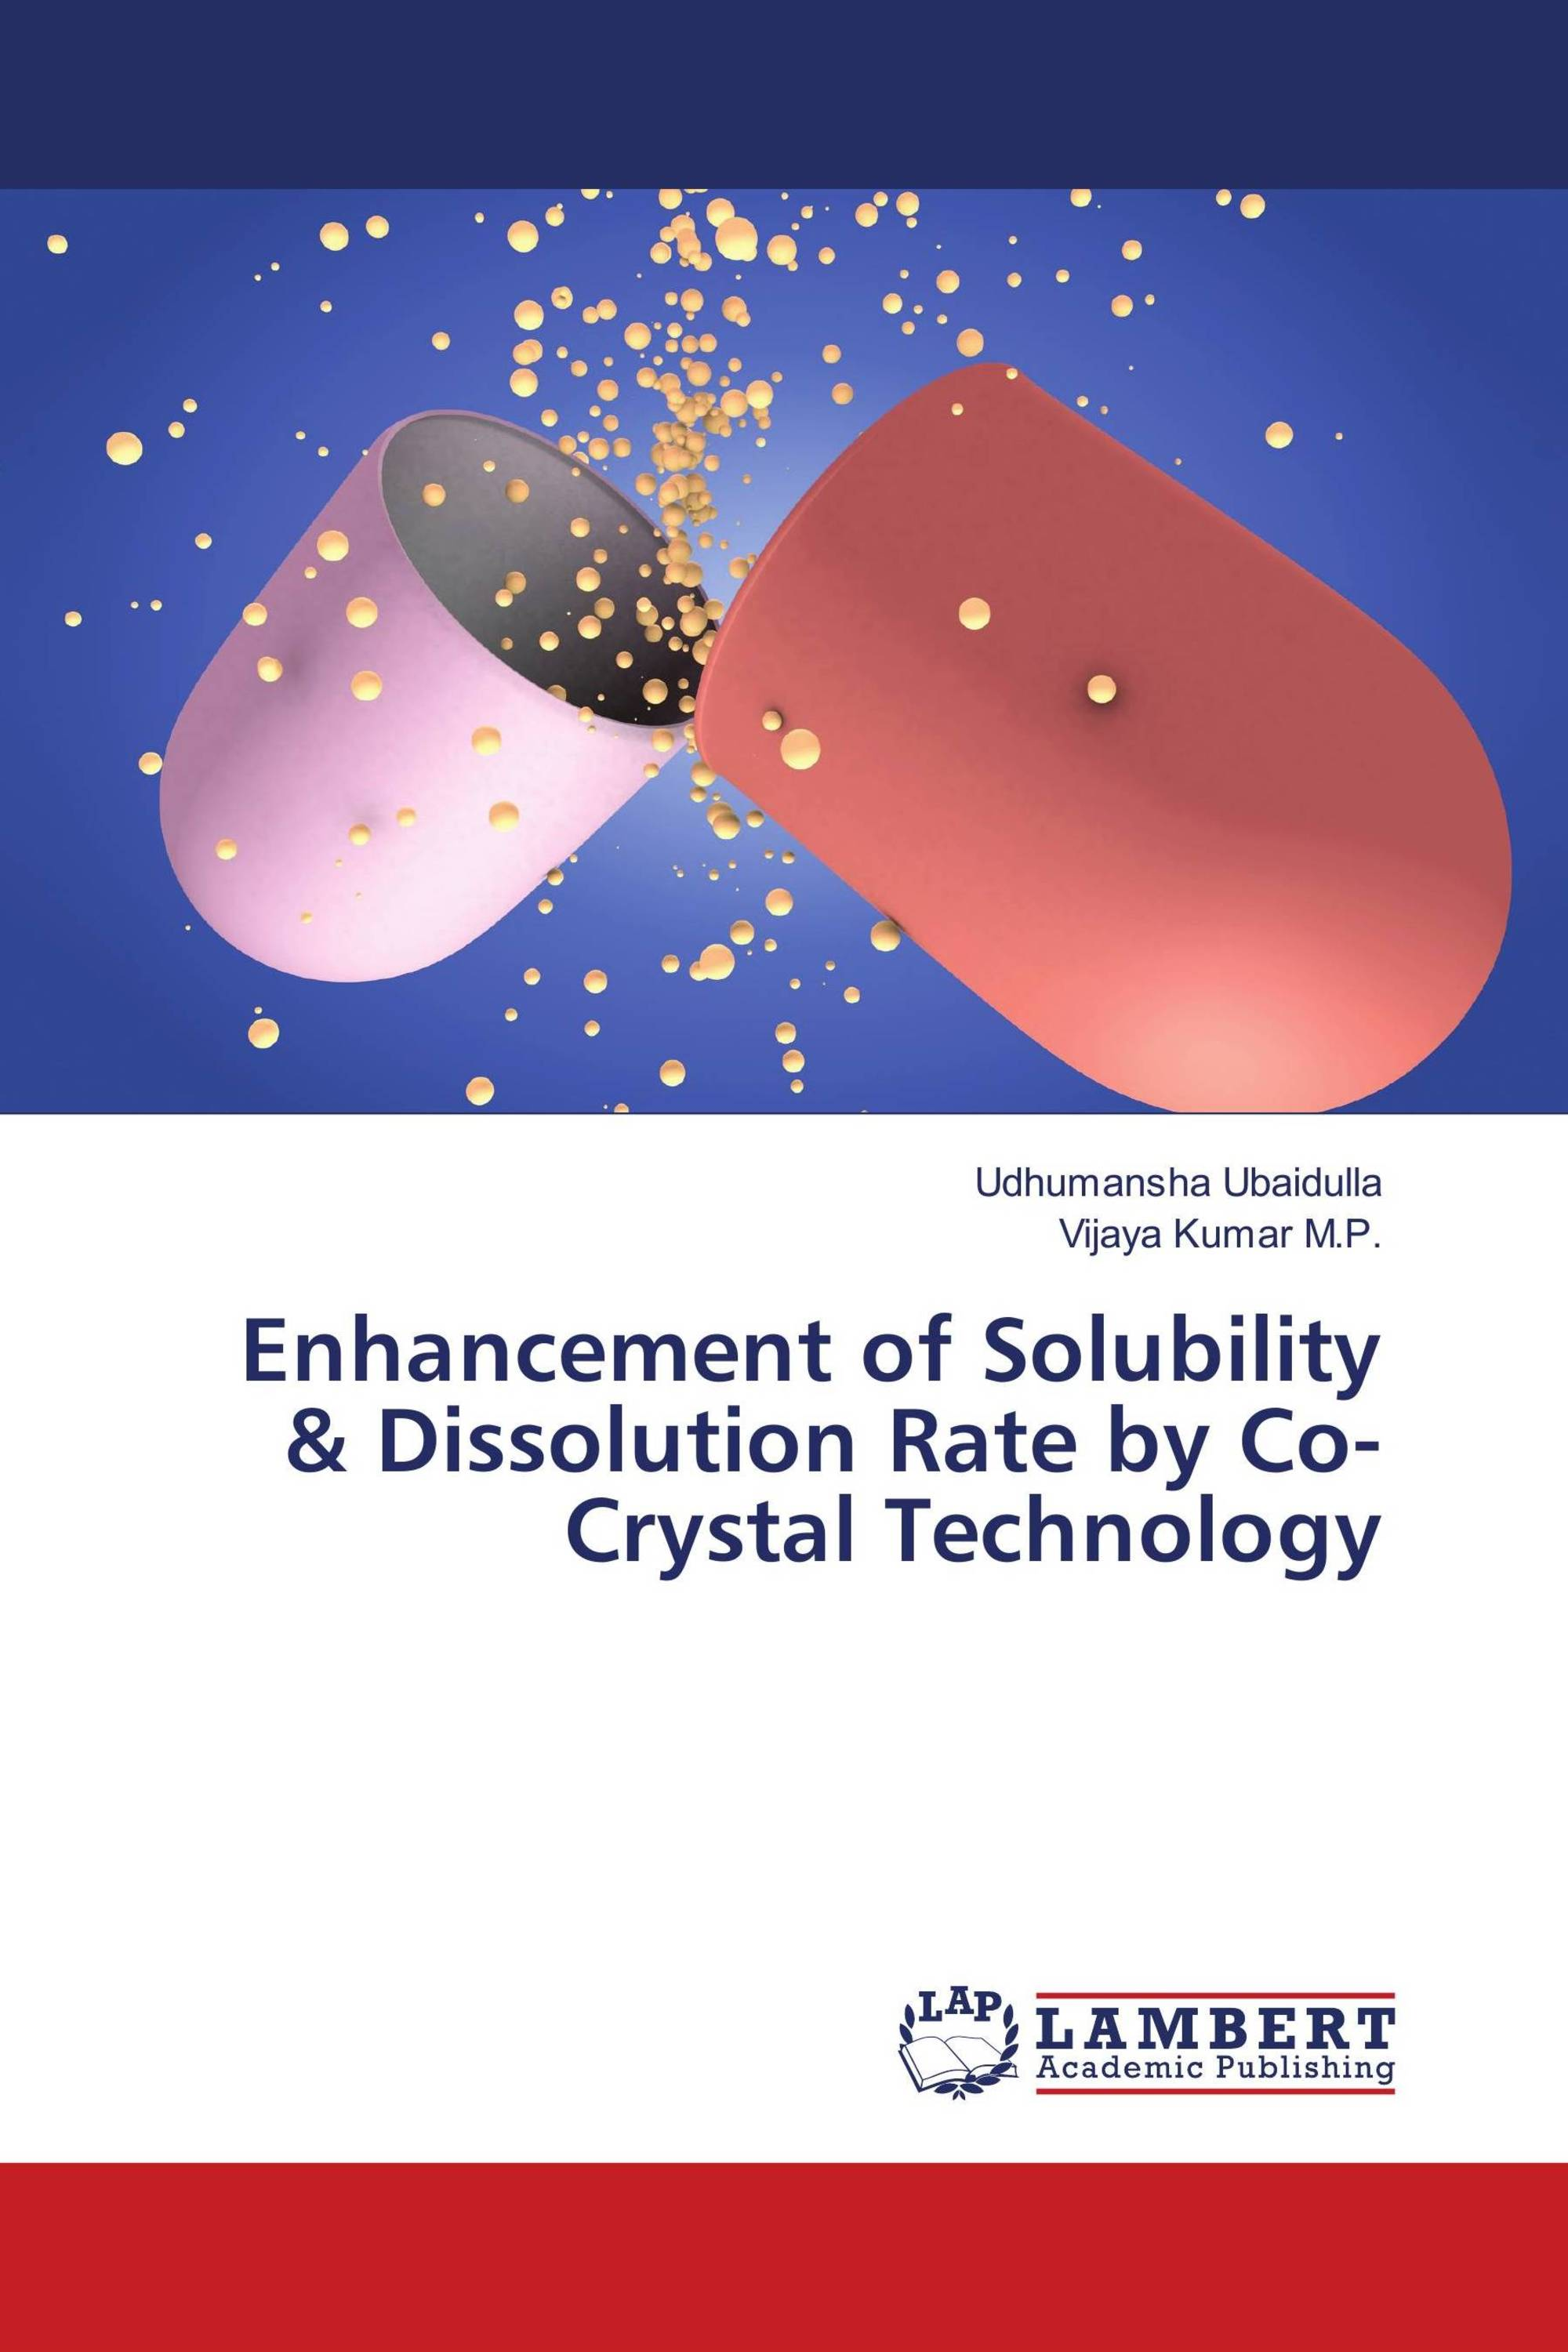 thesis on solid dispersions Solid dispersion: methods and polymers to increase the solubility of  solid  dispersions in water-soluble carriers have engrossed.